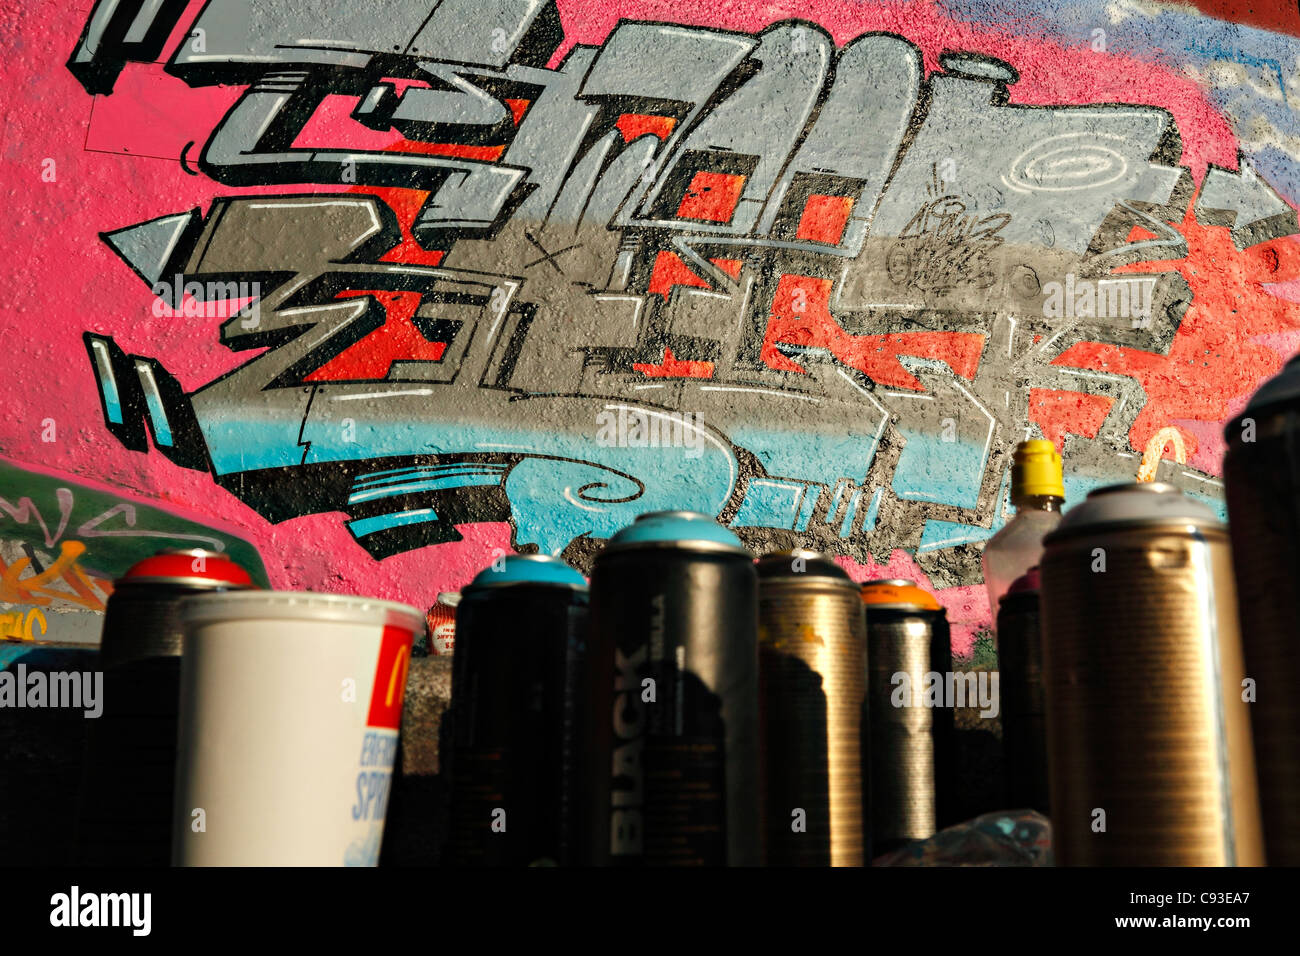 Spray Paint Cans And Graffiti On A Concrete Wall Under The